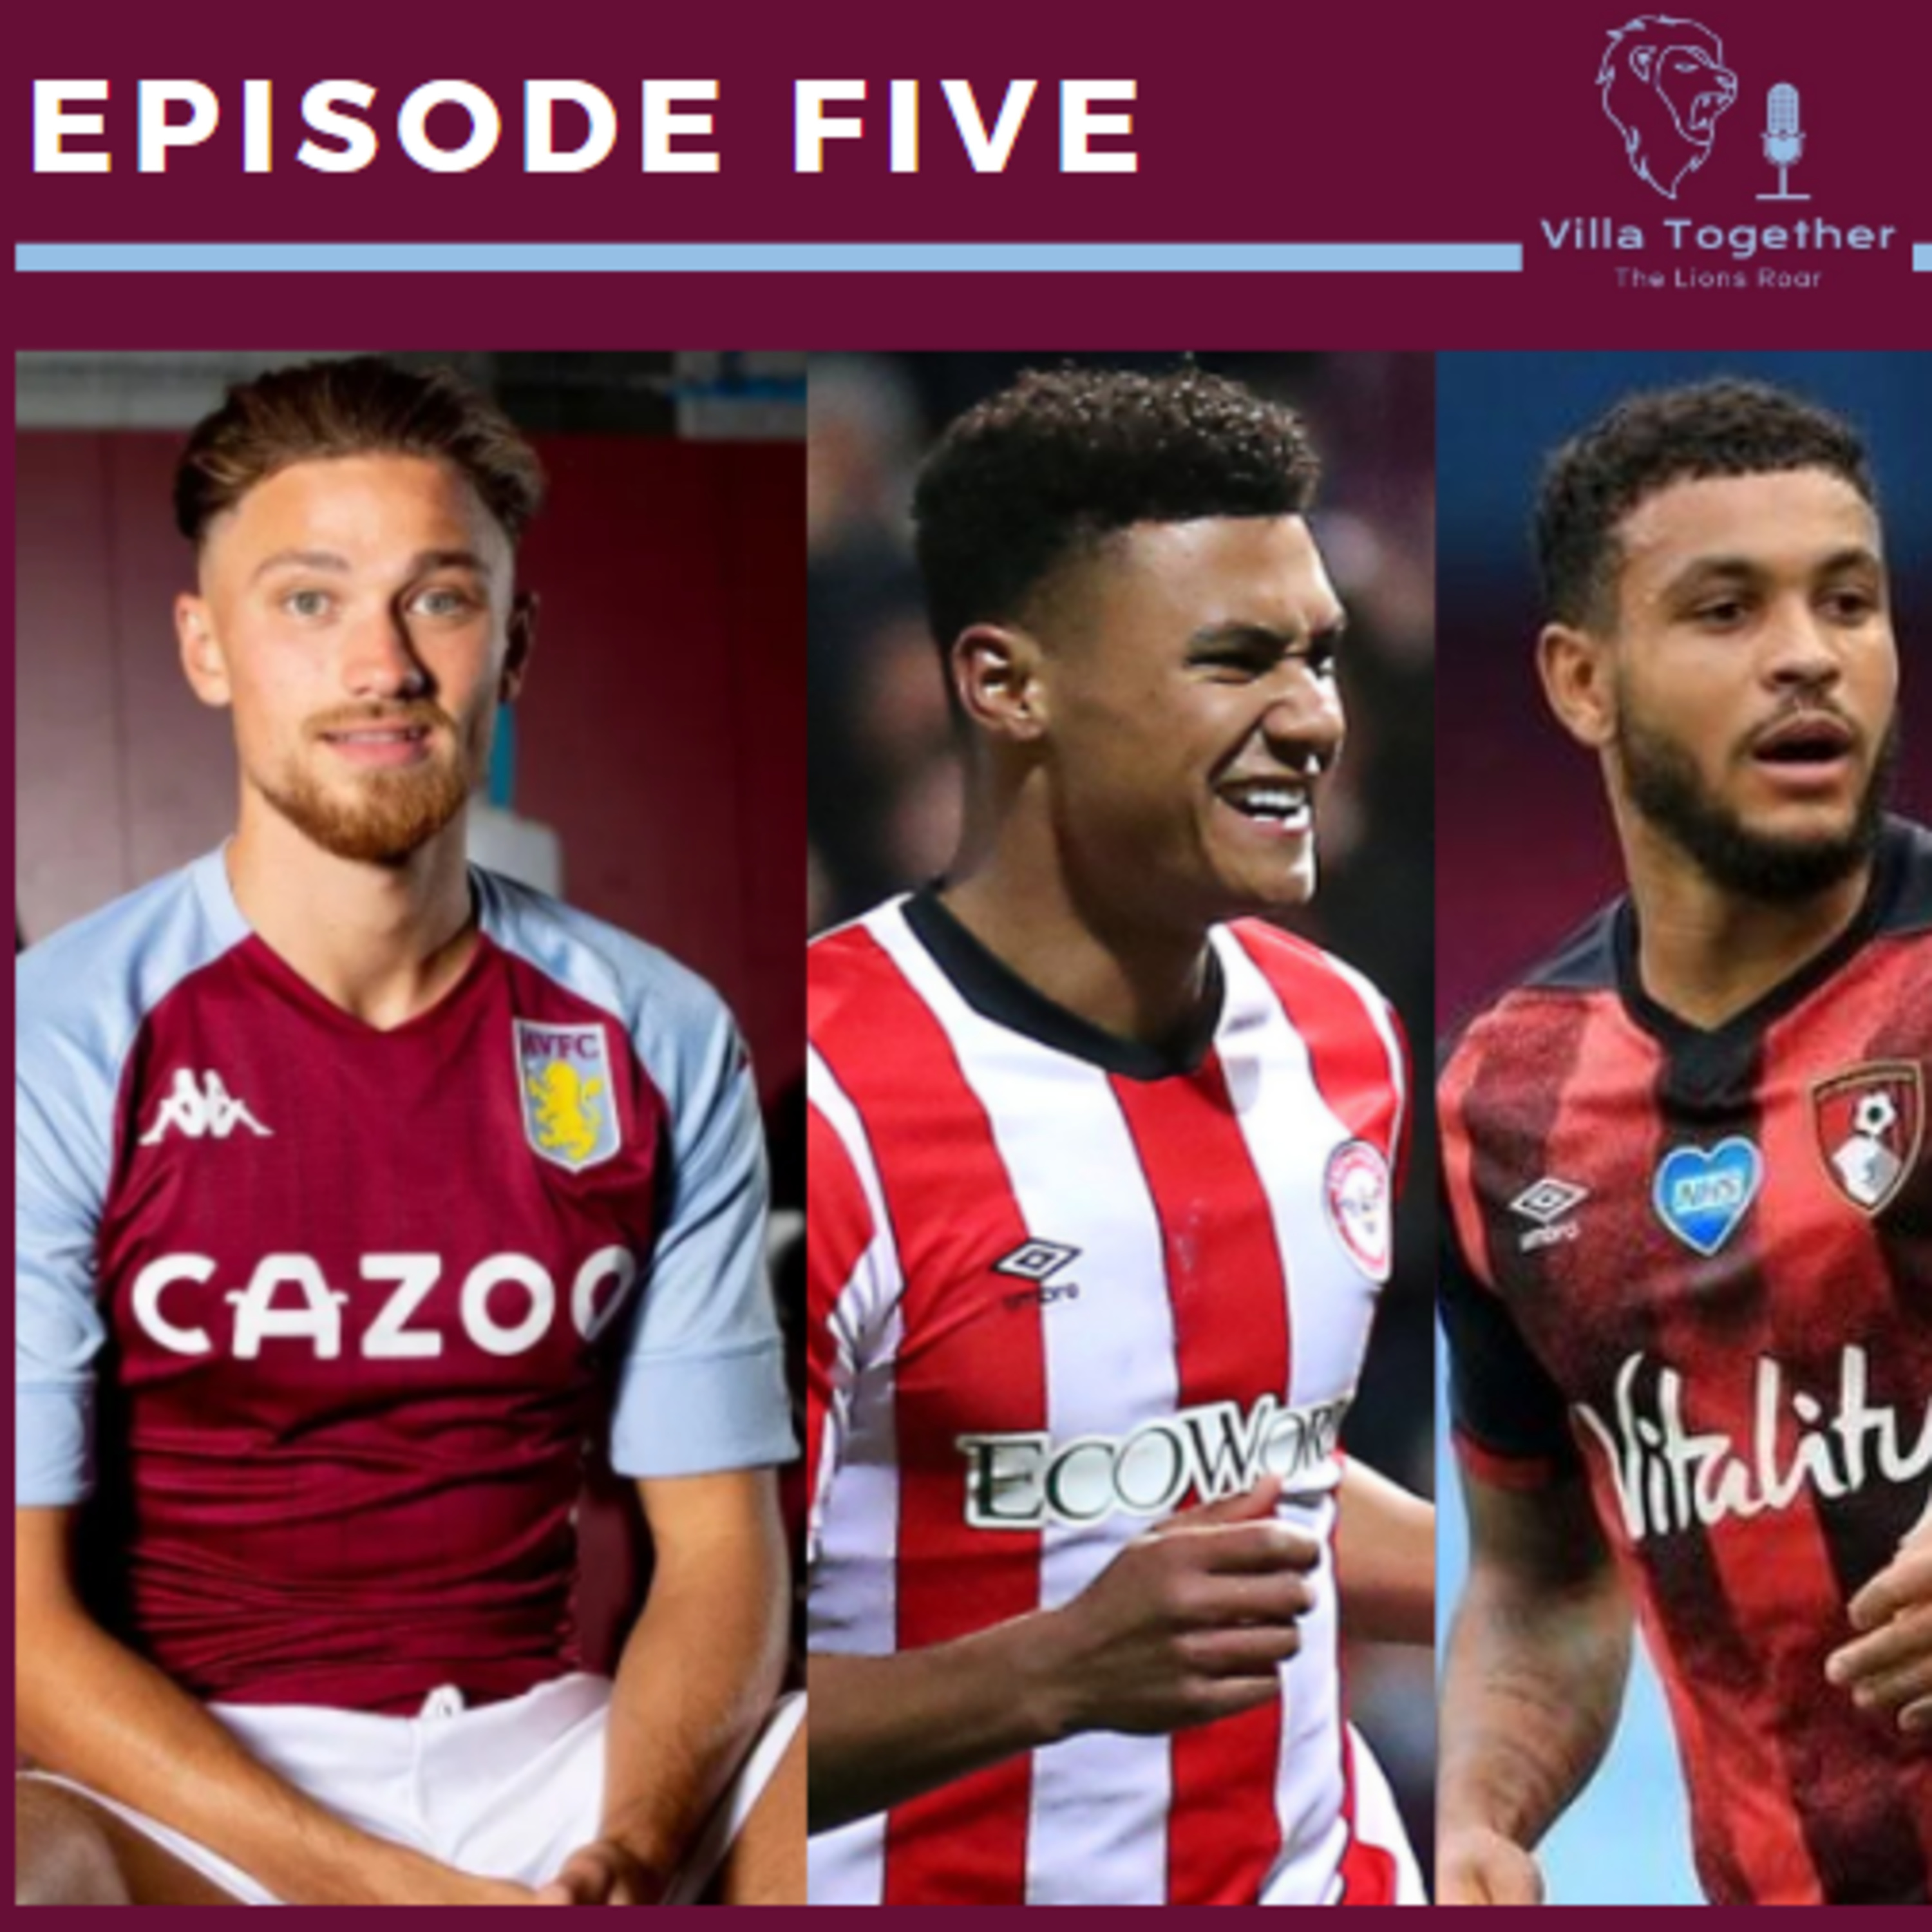 Villa Together - The Lions Roar Podcast (Aston Villa Podcast) Episode Five